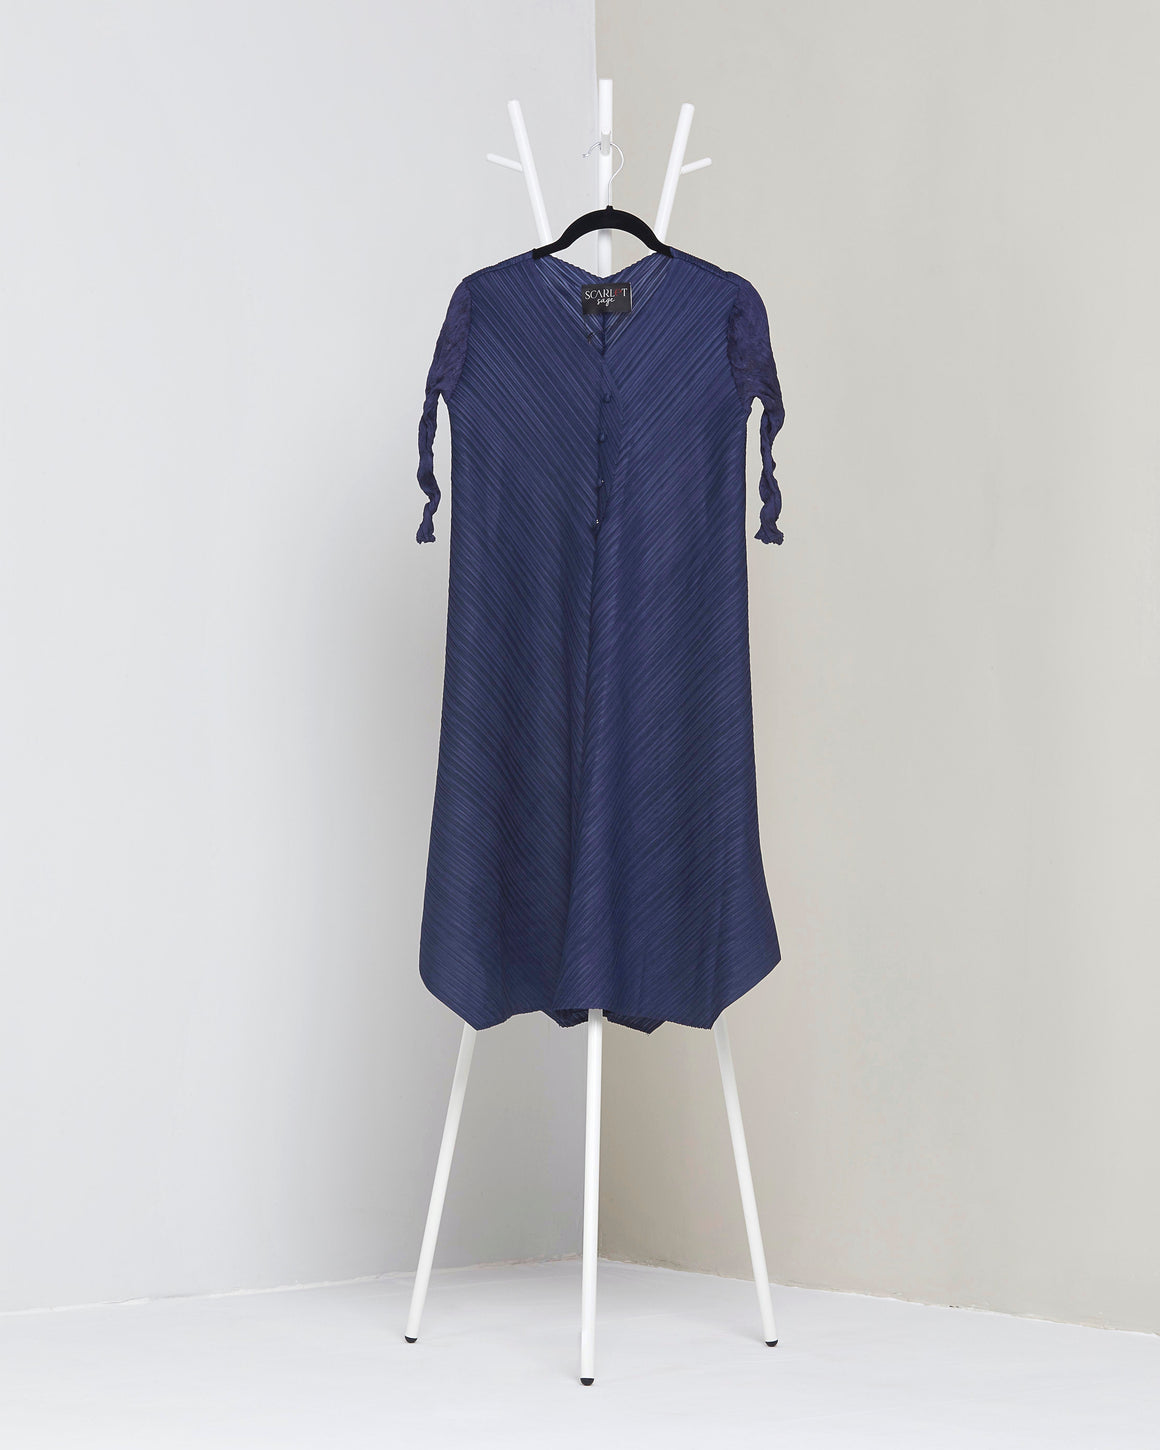 V Neck Tunic Dress - Navy Blue